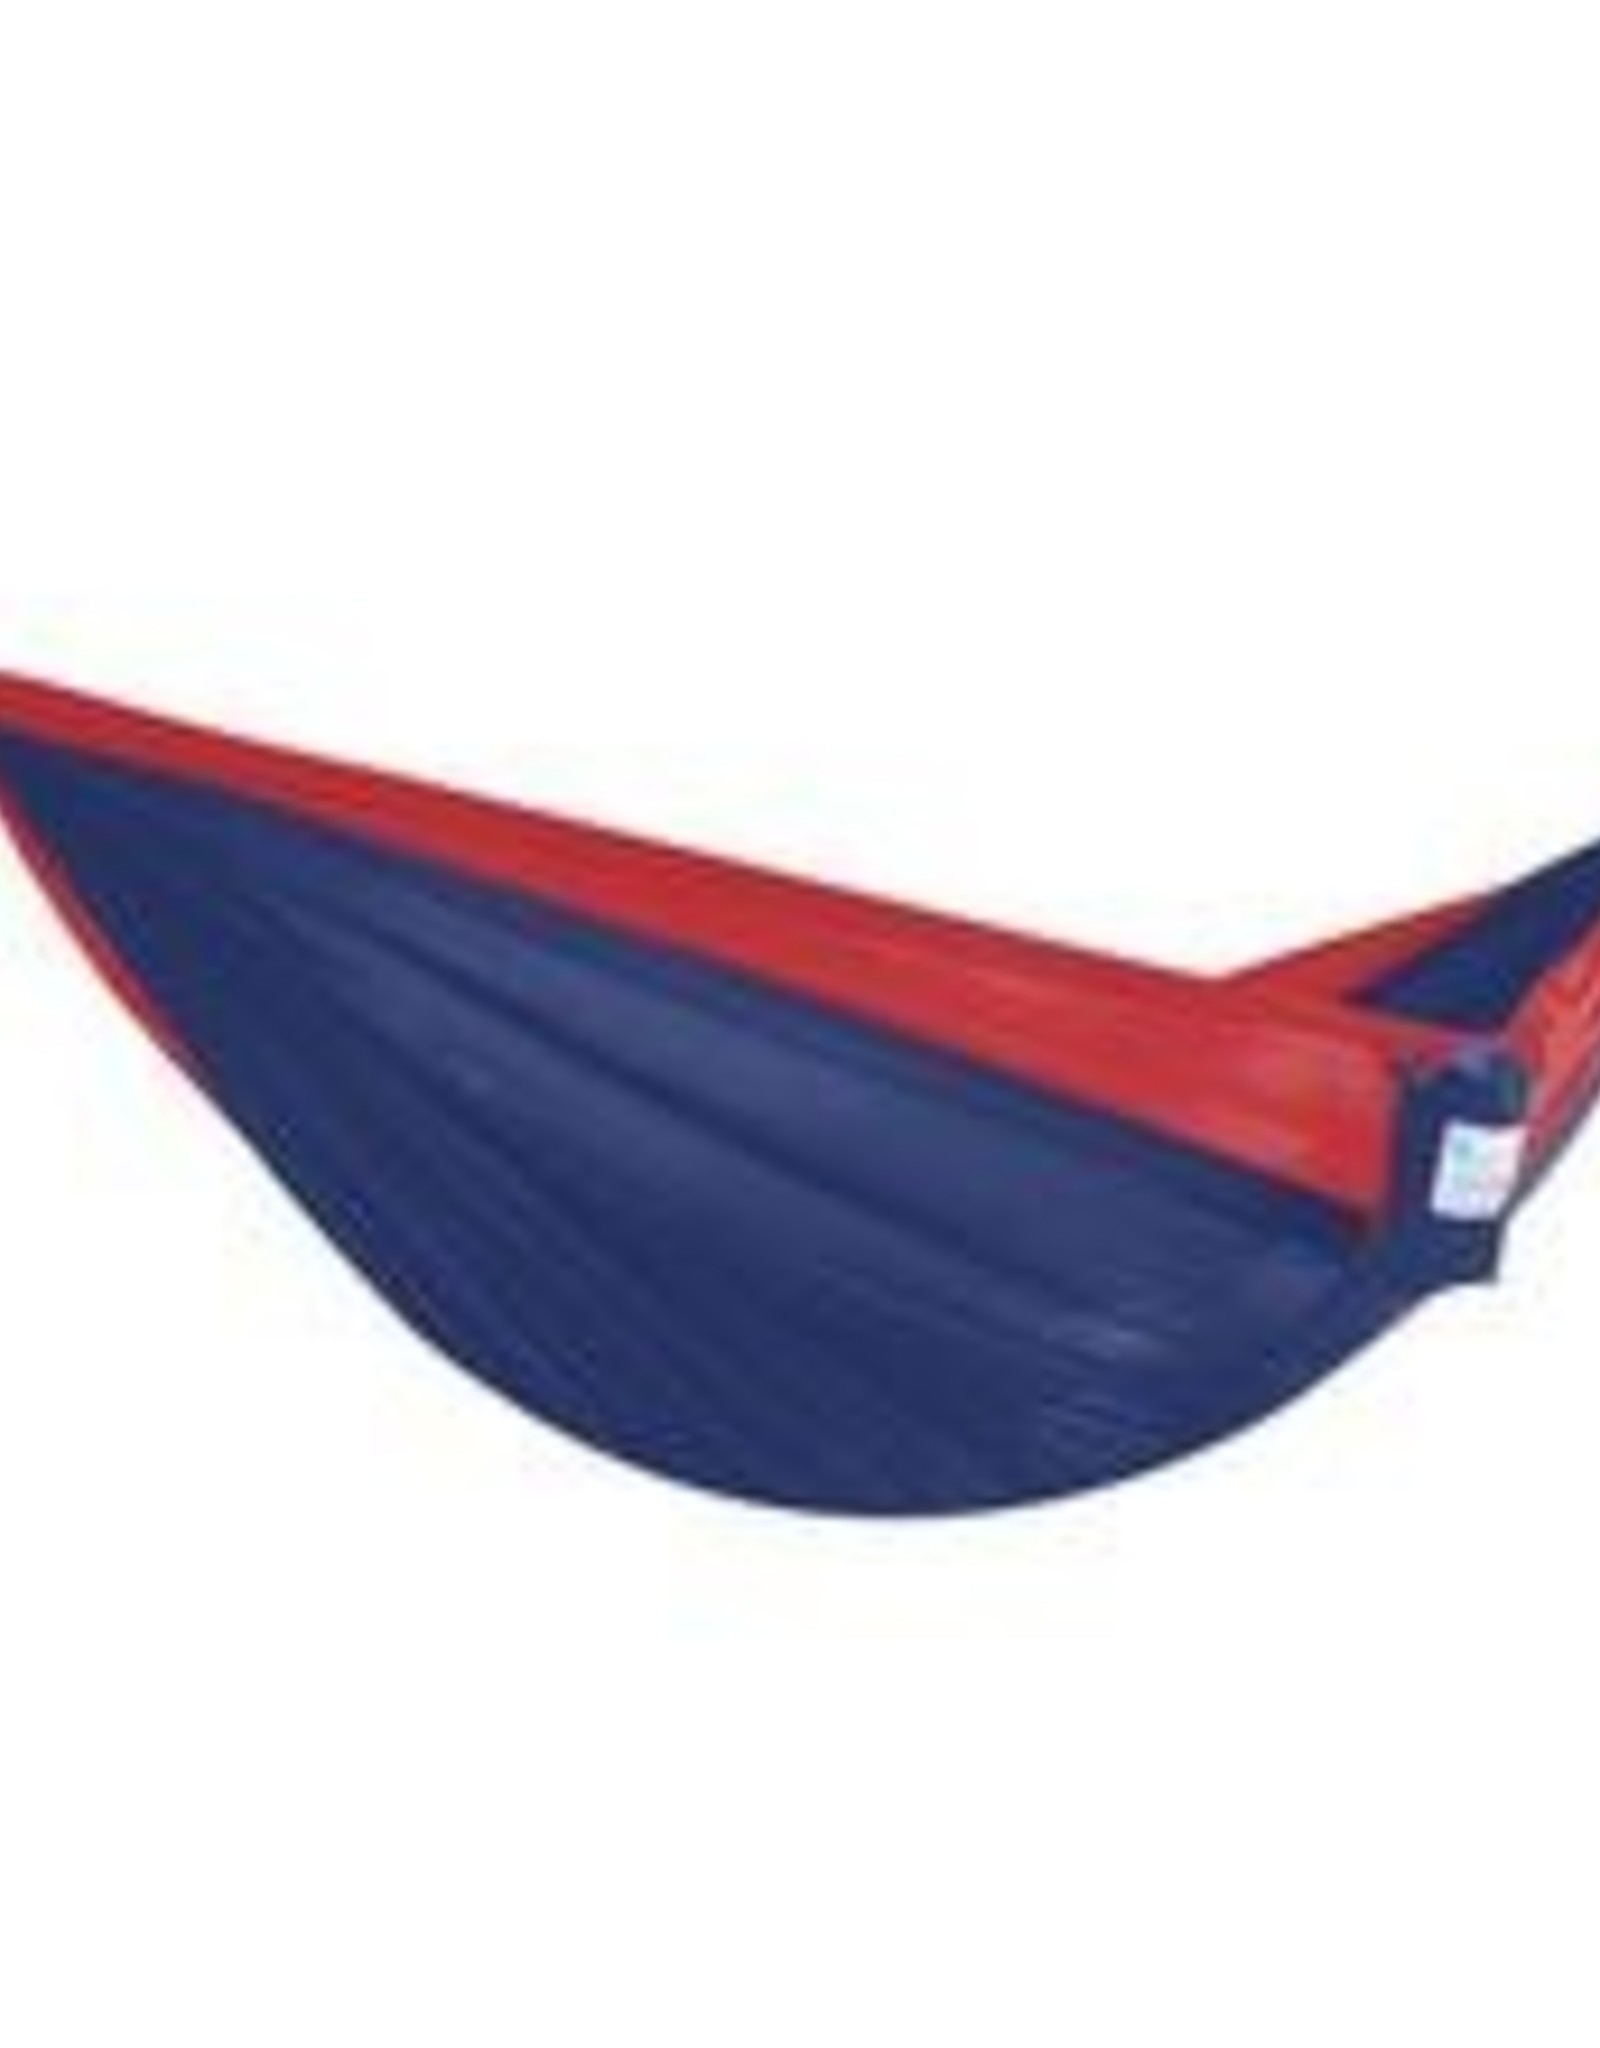 Hammock Vivere Parachute Double Navy / Red 25